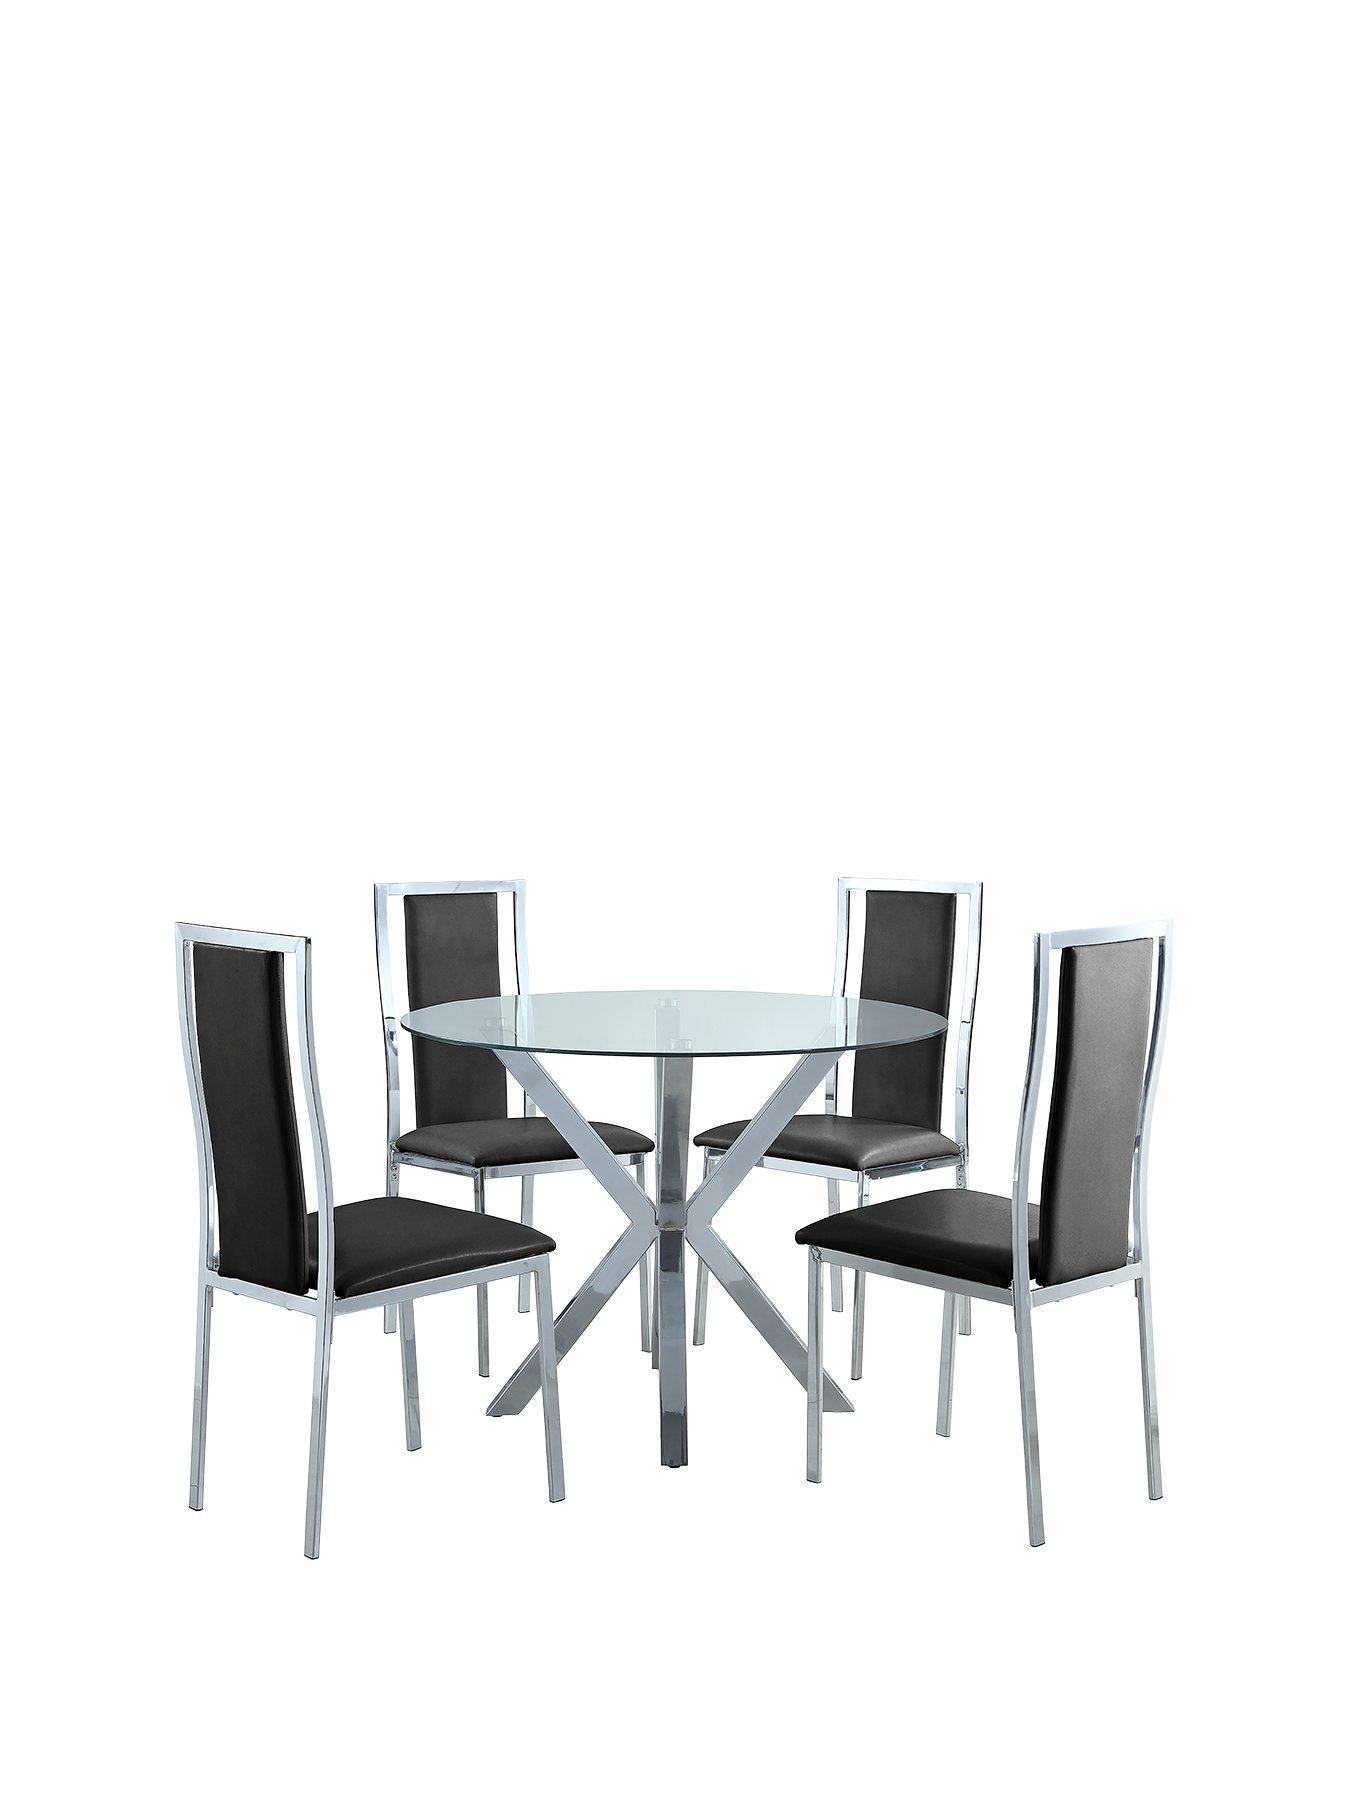 dining room sets co uk. chopstick 100 cm round glass dining table + 4 atlantic chairs- clear/black room sets co uk t